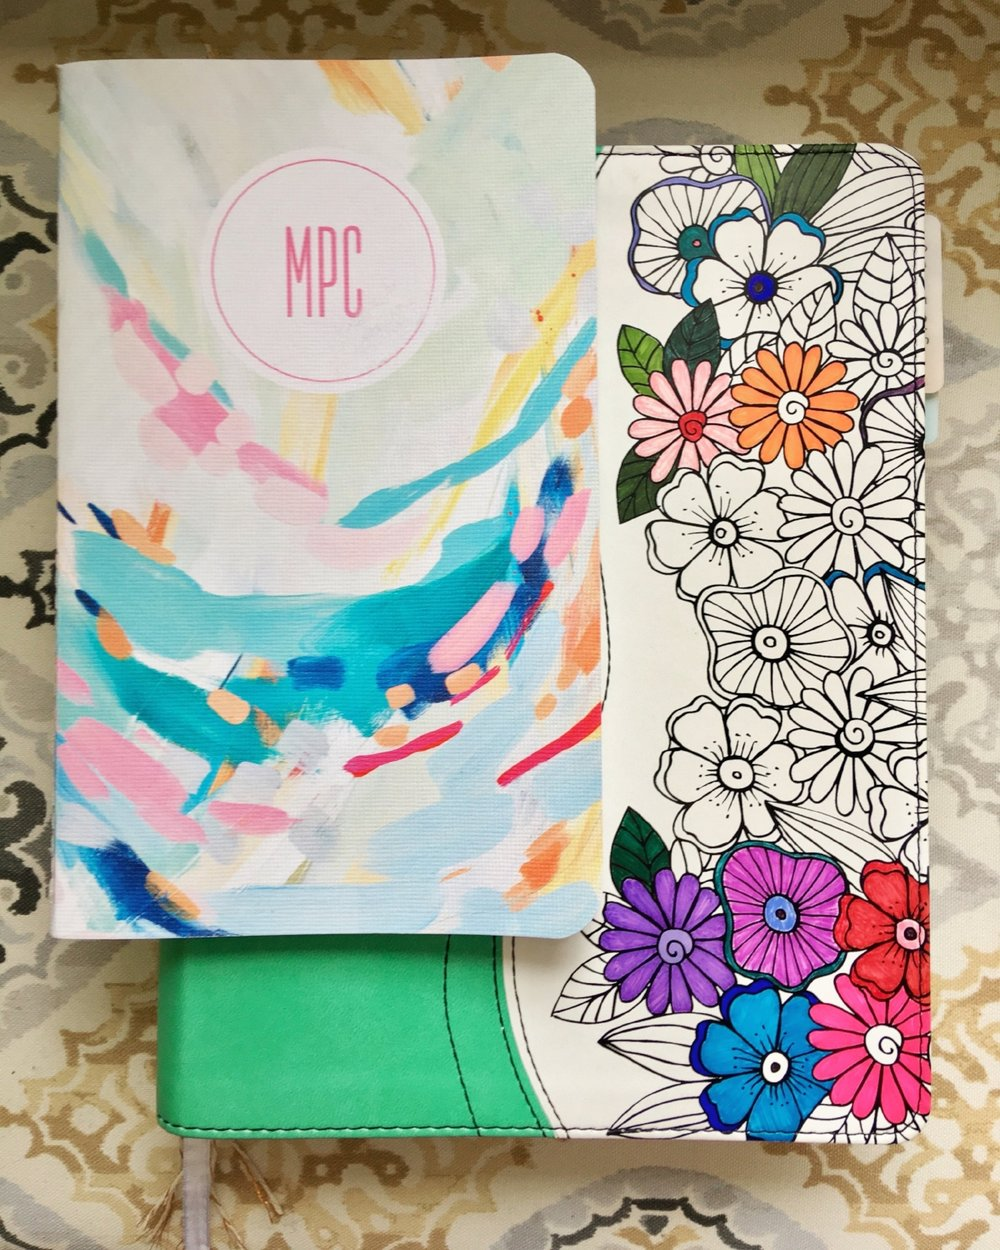 I used this gratitude journal and my bible a lot during the second month of the challenge. Choosing to spend time reading a bible verse and recording my thoughts in this journal as a part of my daily routine has had a large impact on my life, even though it was a relatively small change!